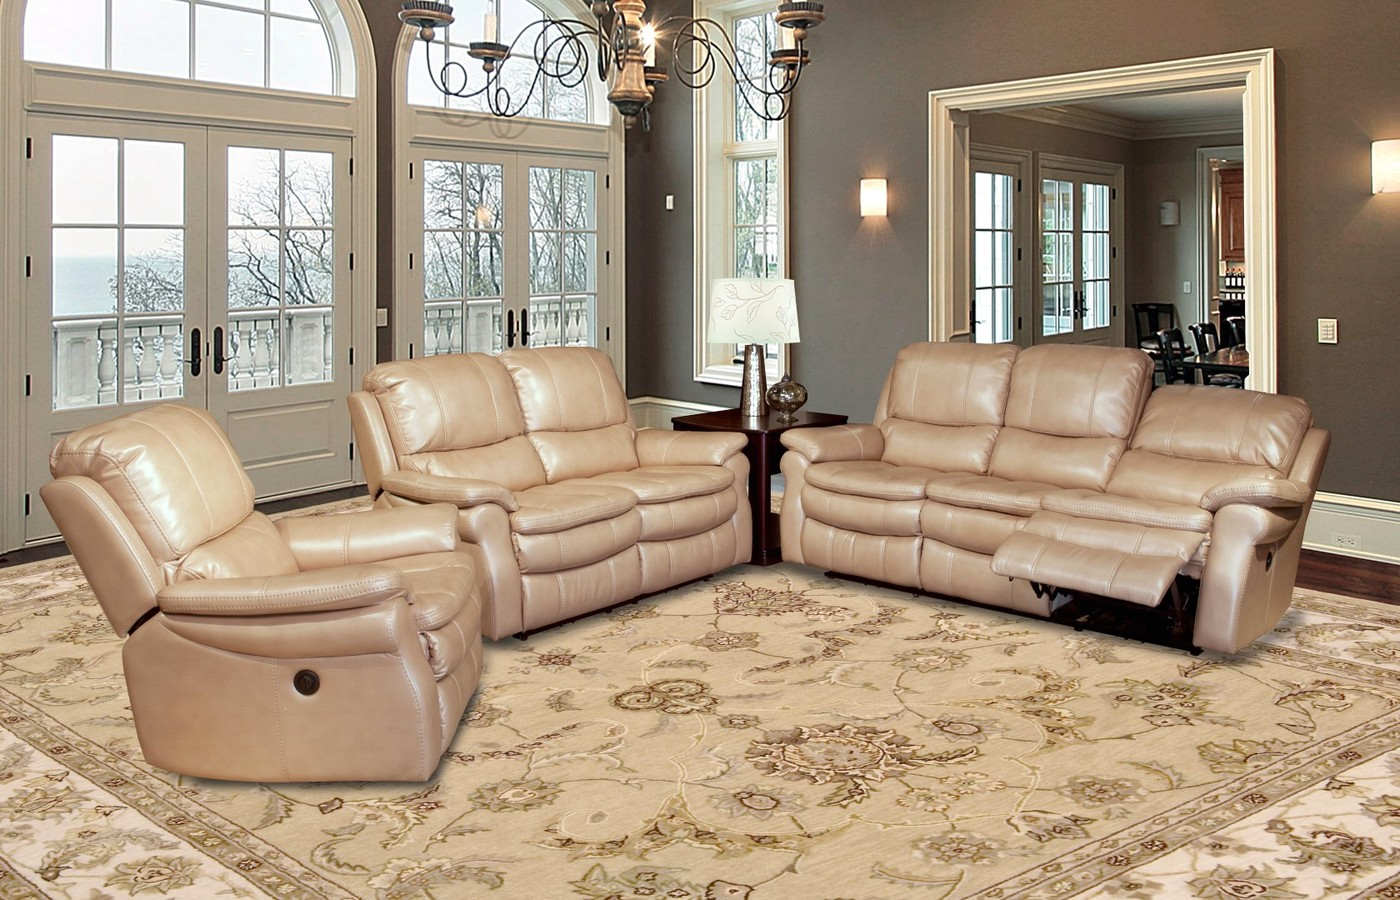 Parker living juno sand leather reclining sofa set mjun for Sand leather sofa